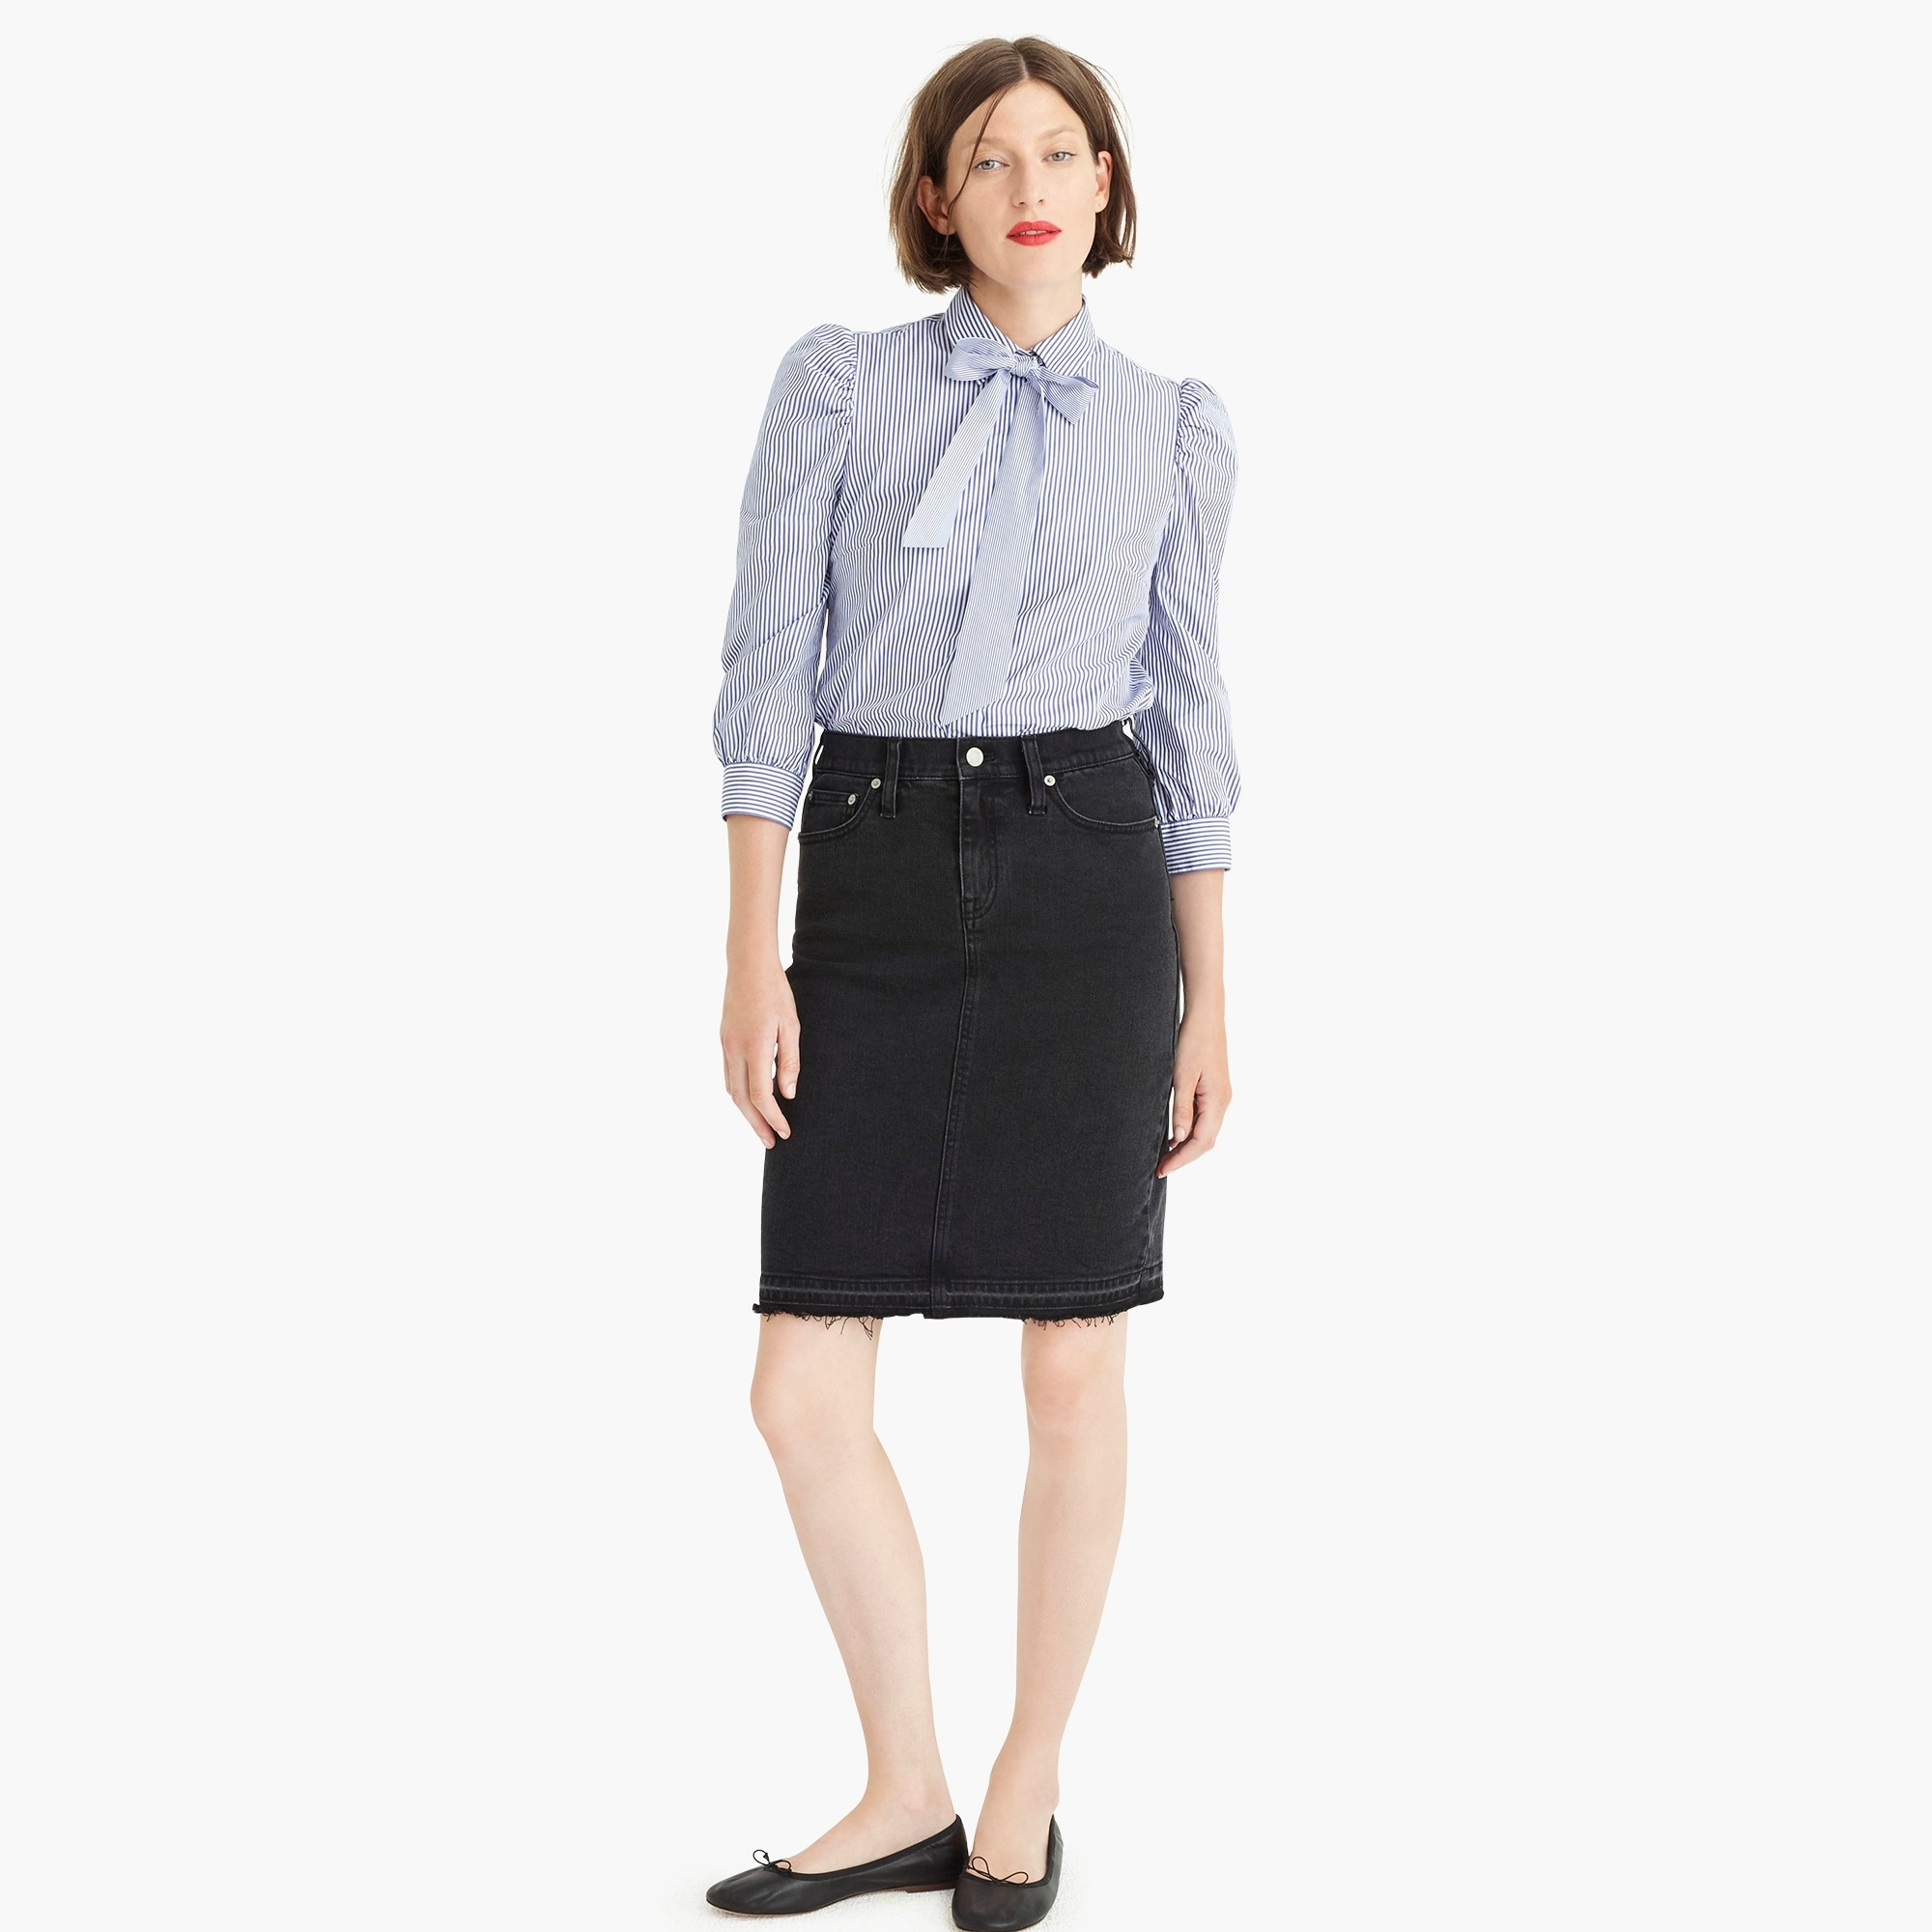 Black denim pencil skirt with let-out hem